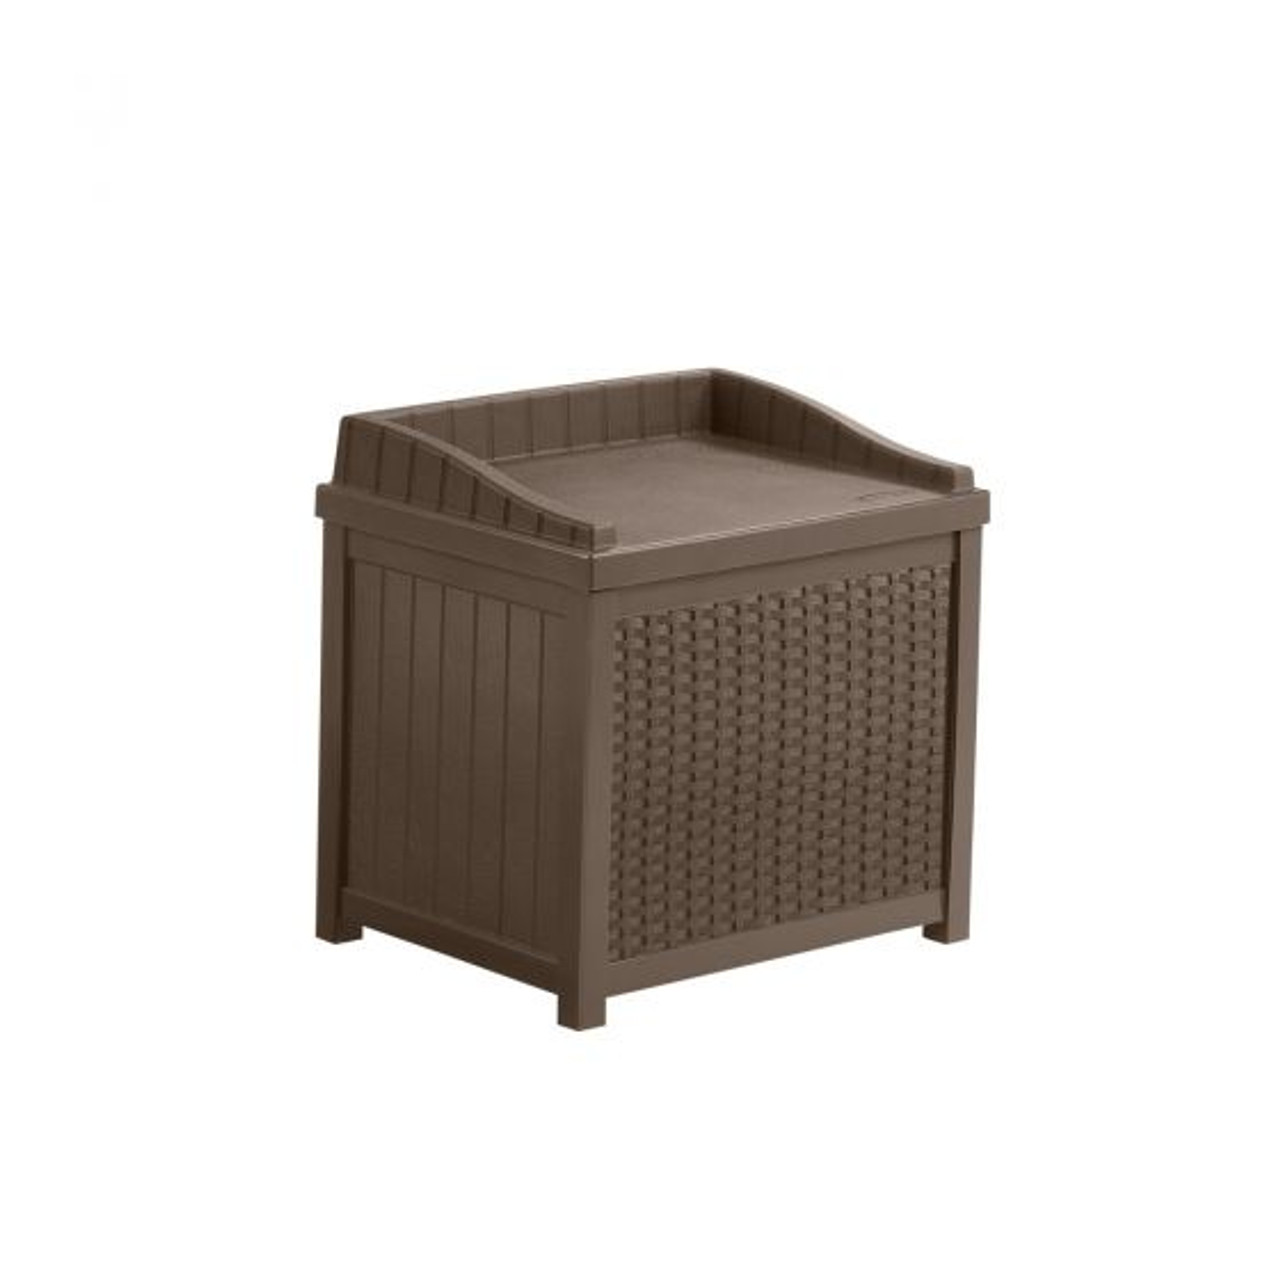 Outdoor Deck or Patio 22 Gallon Deck Box With Seat Wicker Mocha Java